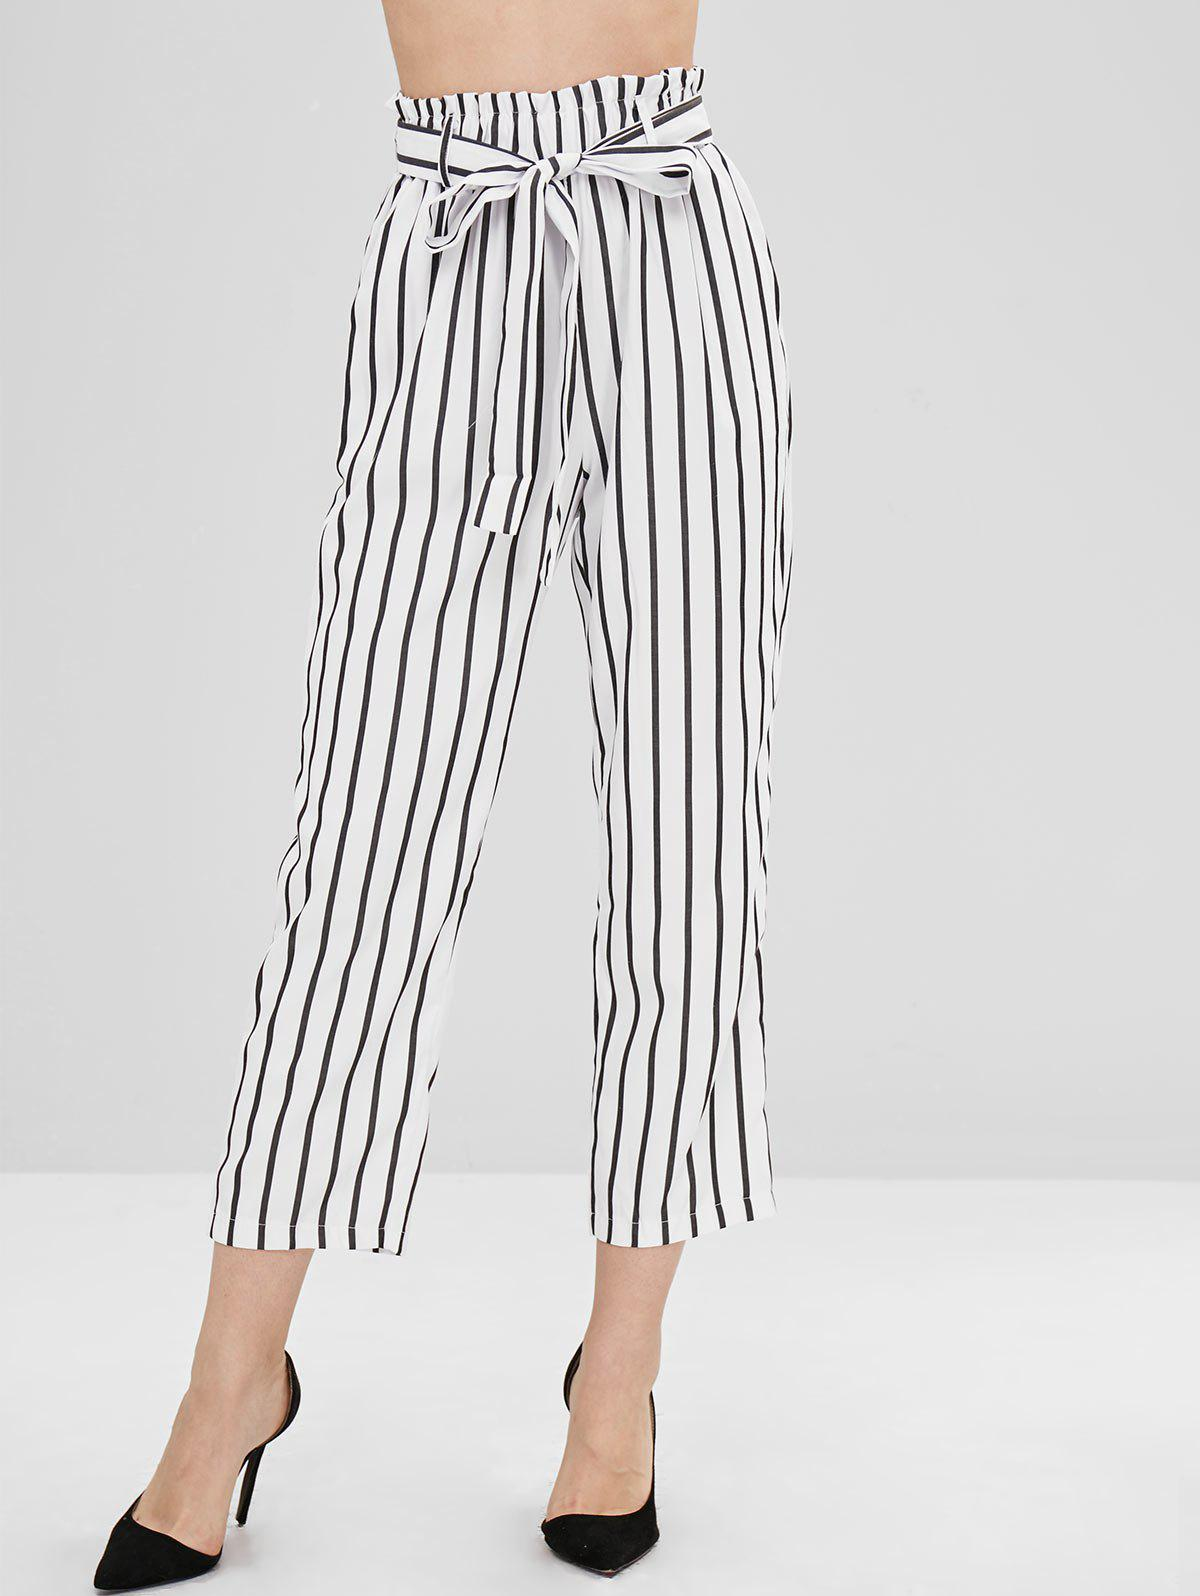 Belted Pockets Stripes Straight Pants фото